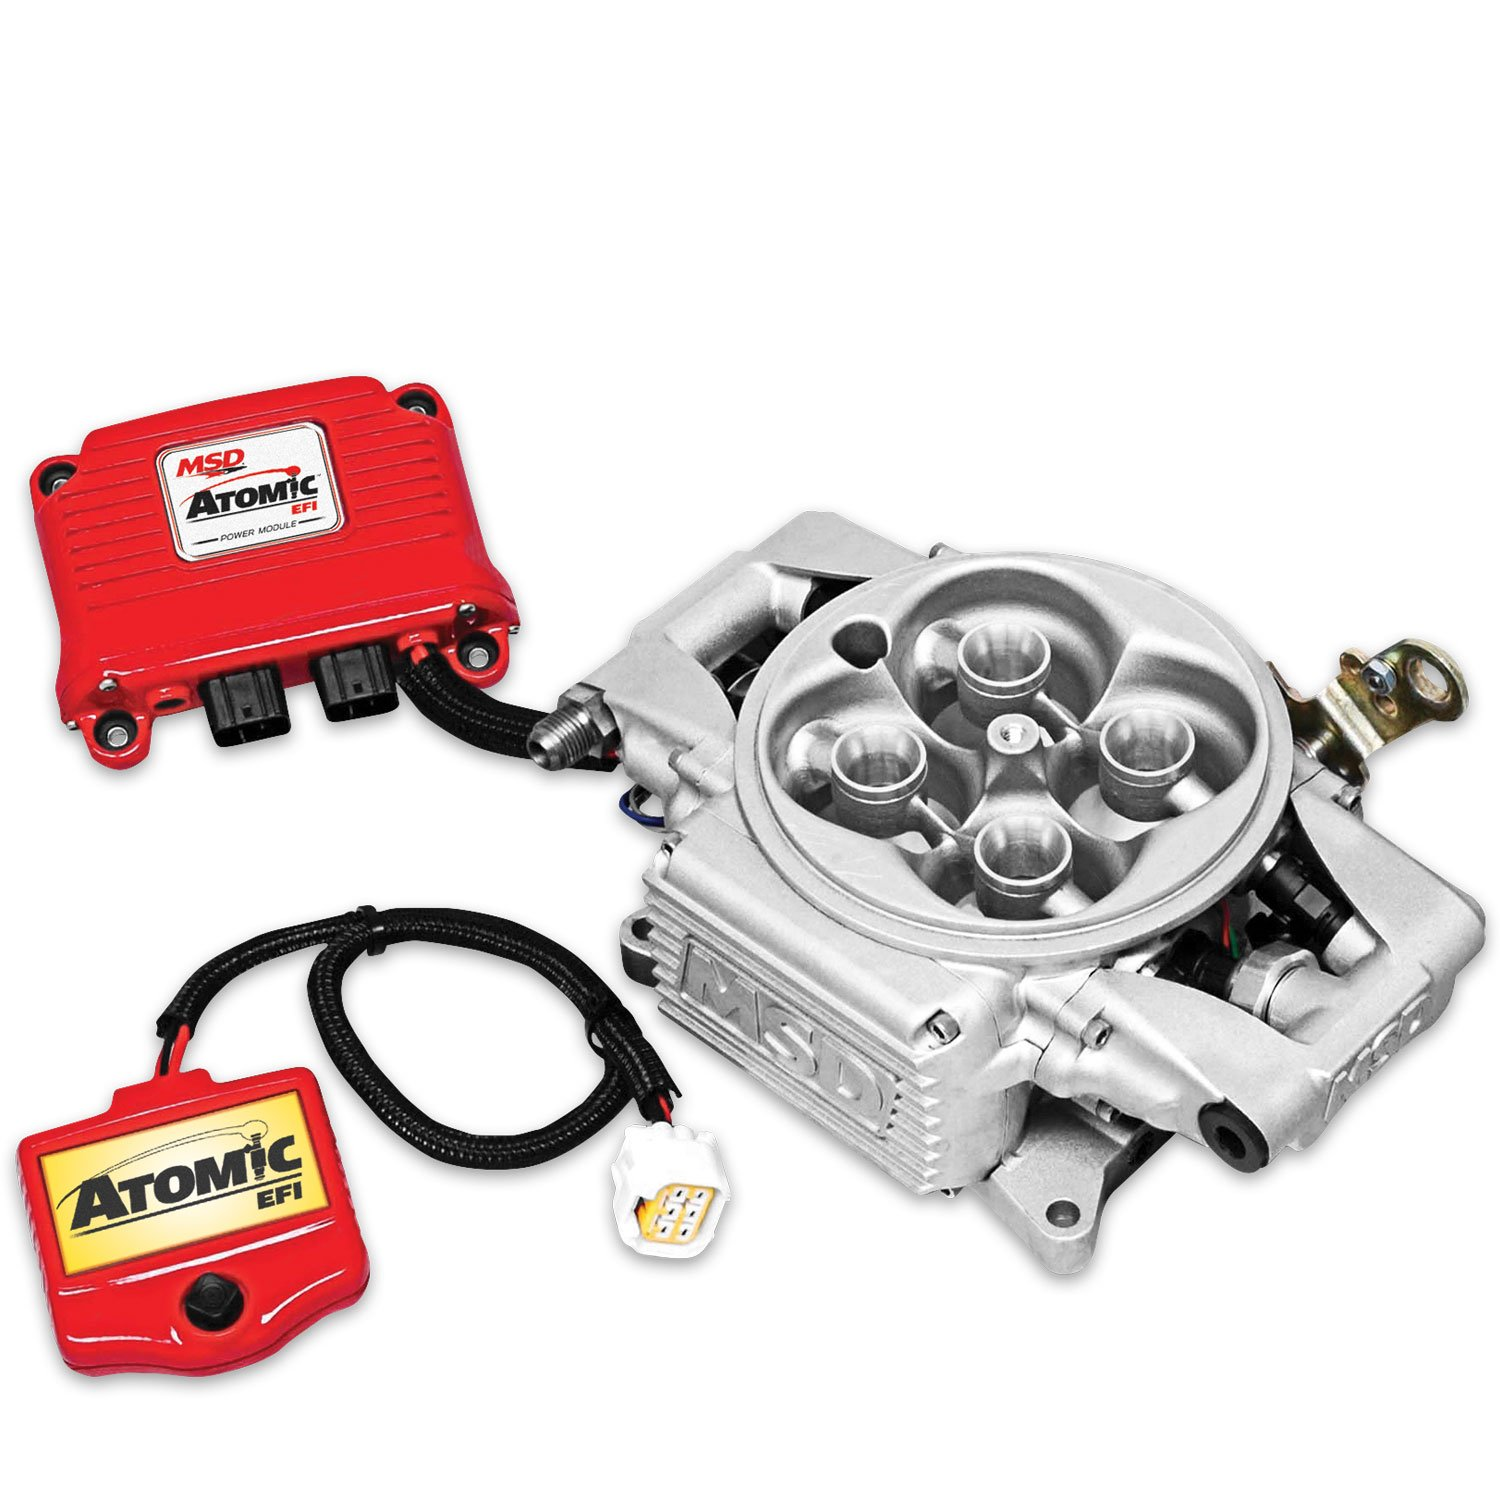 Atomic EFI Throttle Body Kit